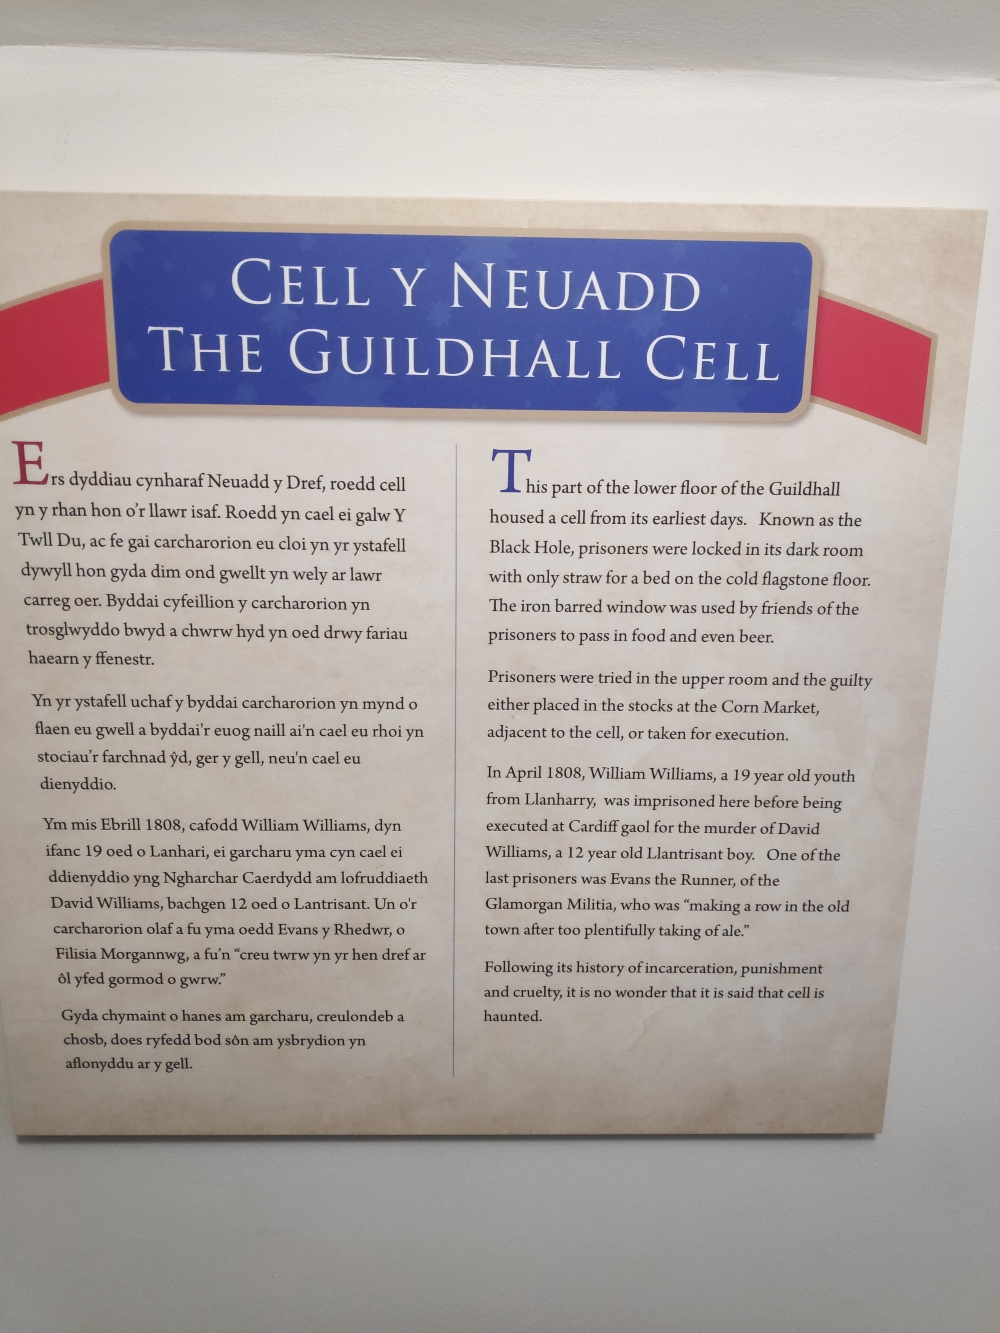 Information board, giving the history of the cell (or Black Hole) in the Guildhall (August 2019)